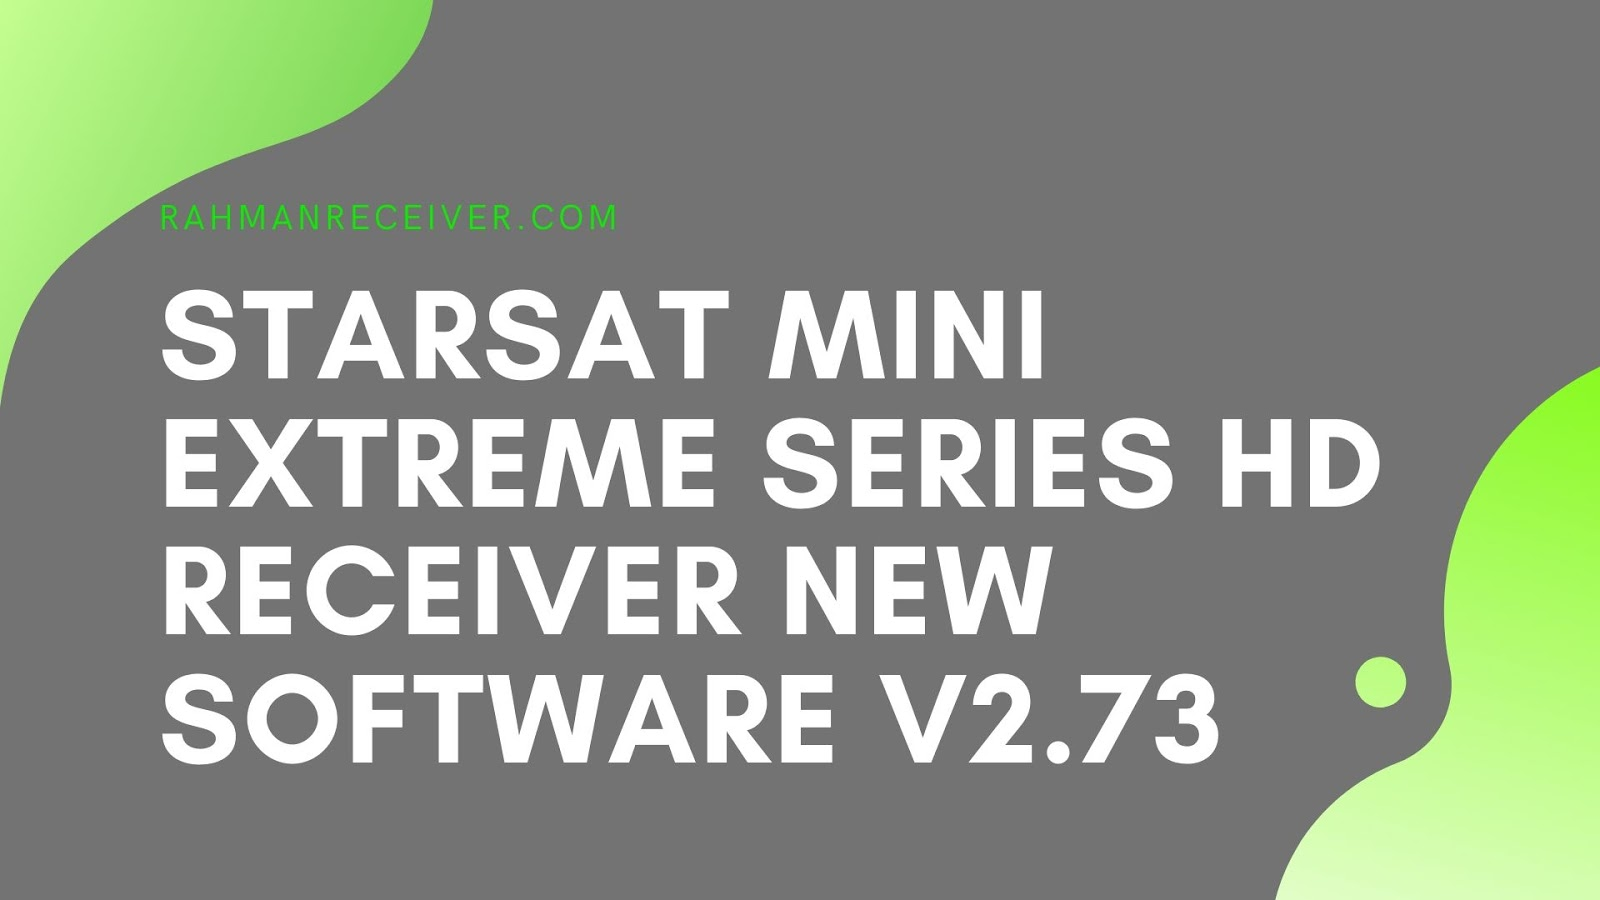 STARSAT MINI EXTREME SERIES HD RECEIVER NEW SOFTWARE V2.73 20 FEB 2020